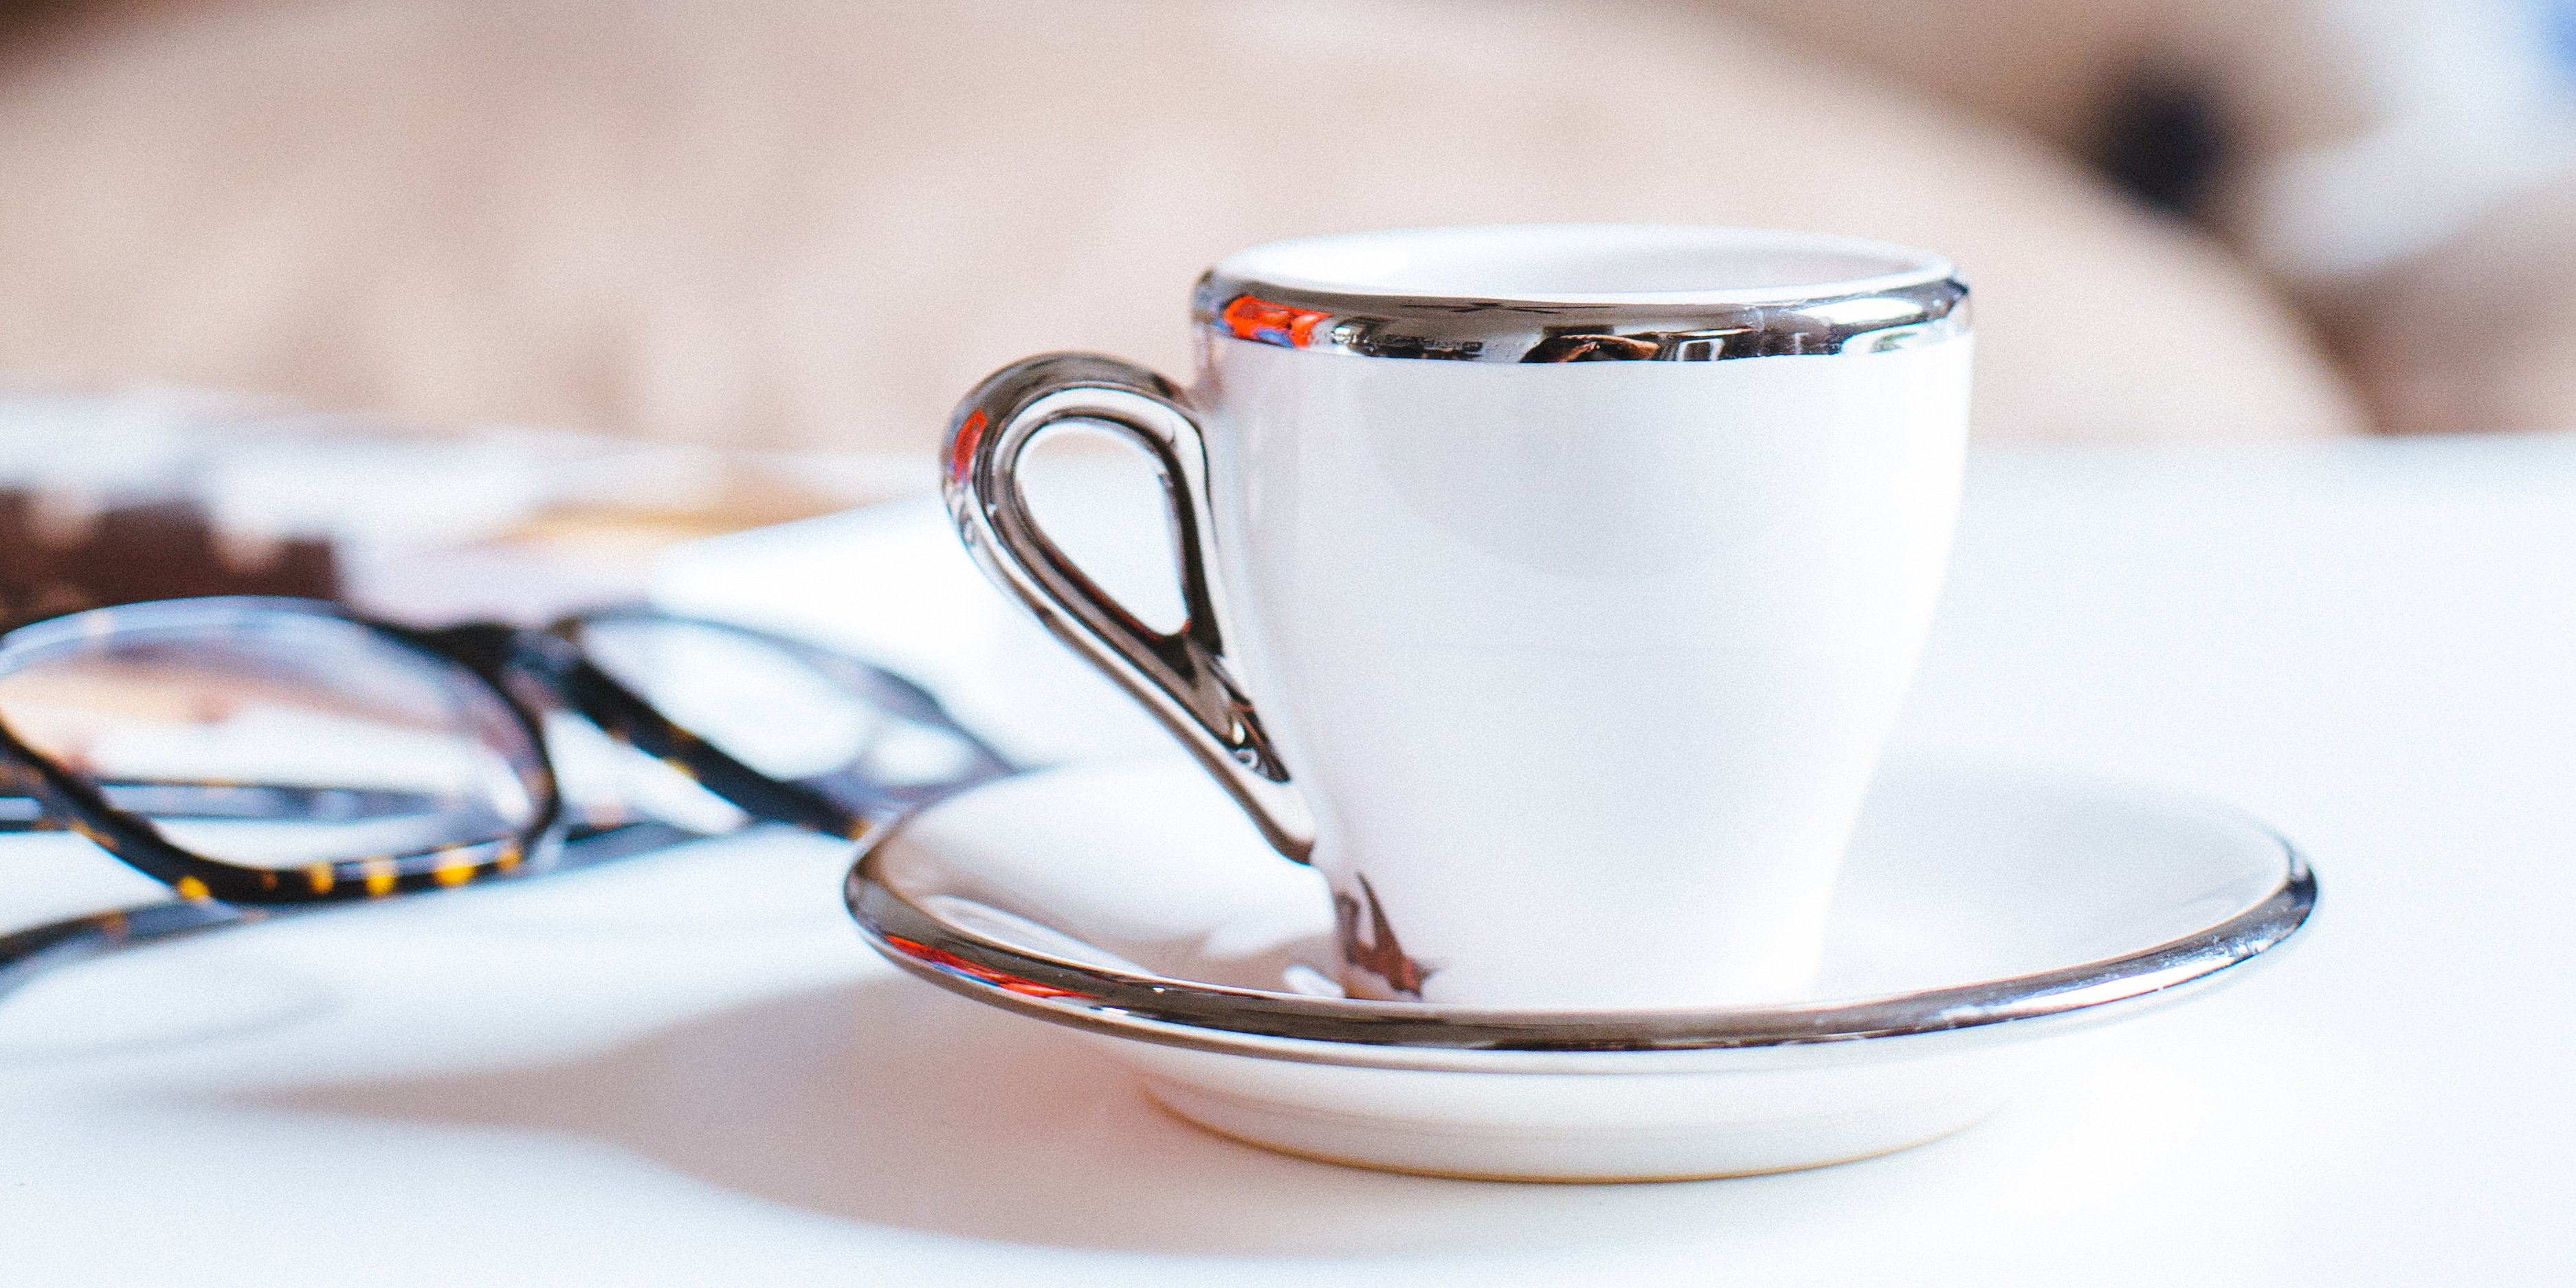 Cup of coffee and saucer on a table